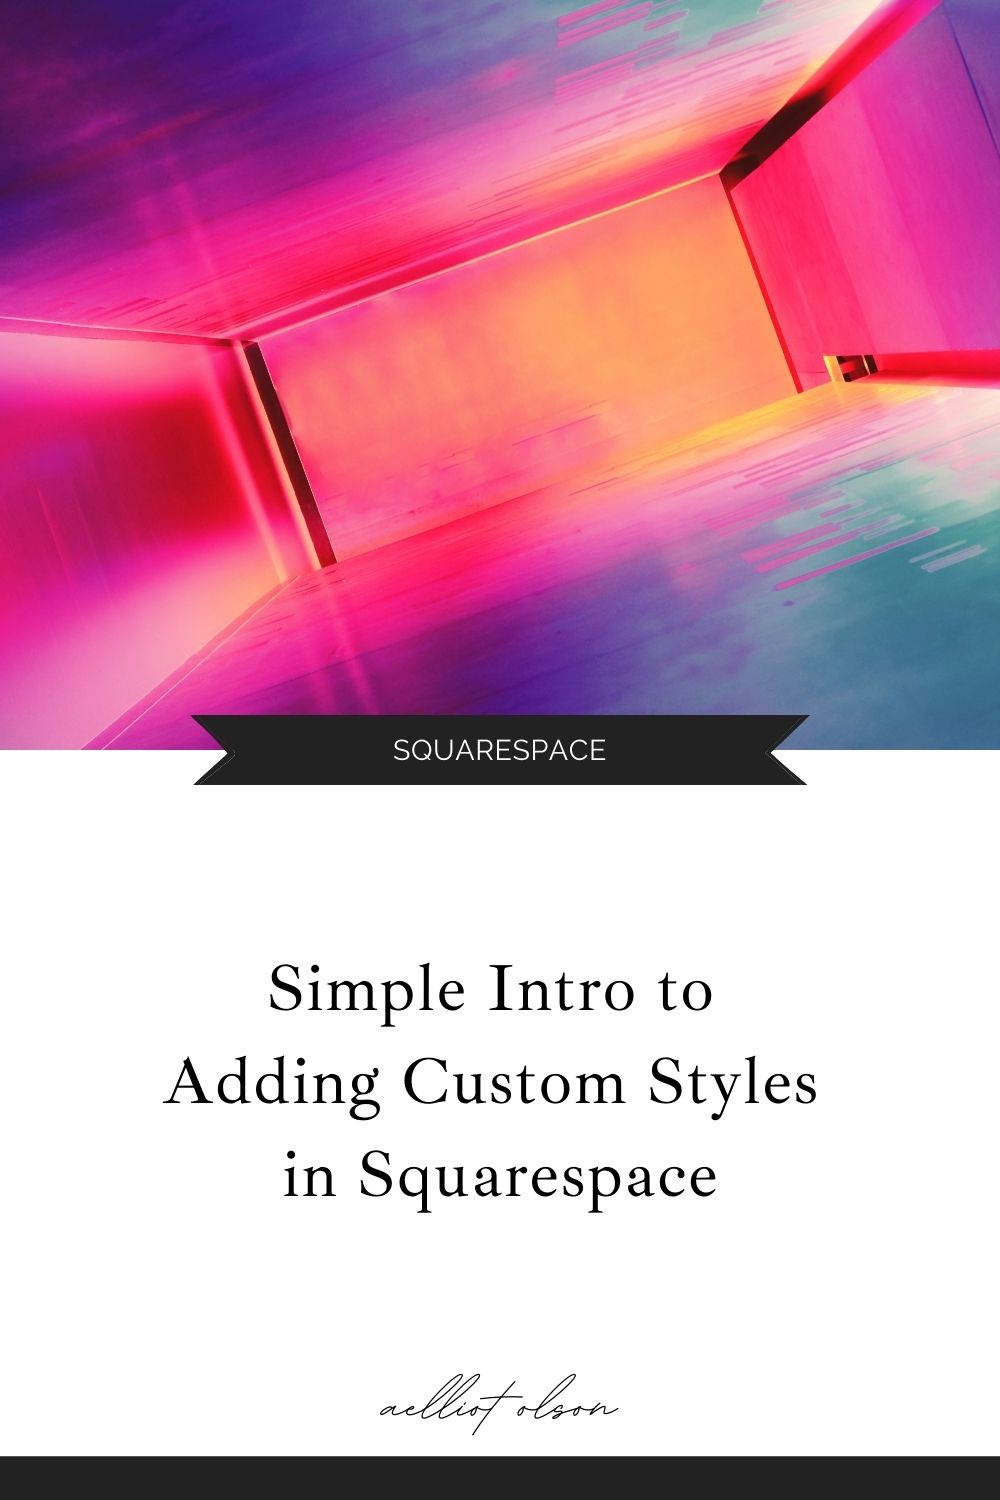 Simple Intro to Adding Custom Styles in Squarespace